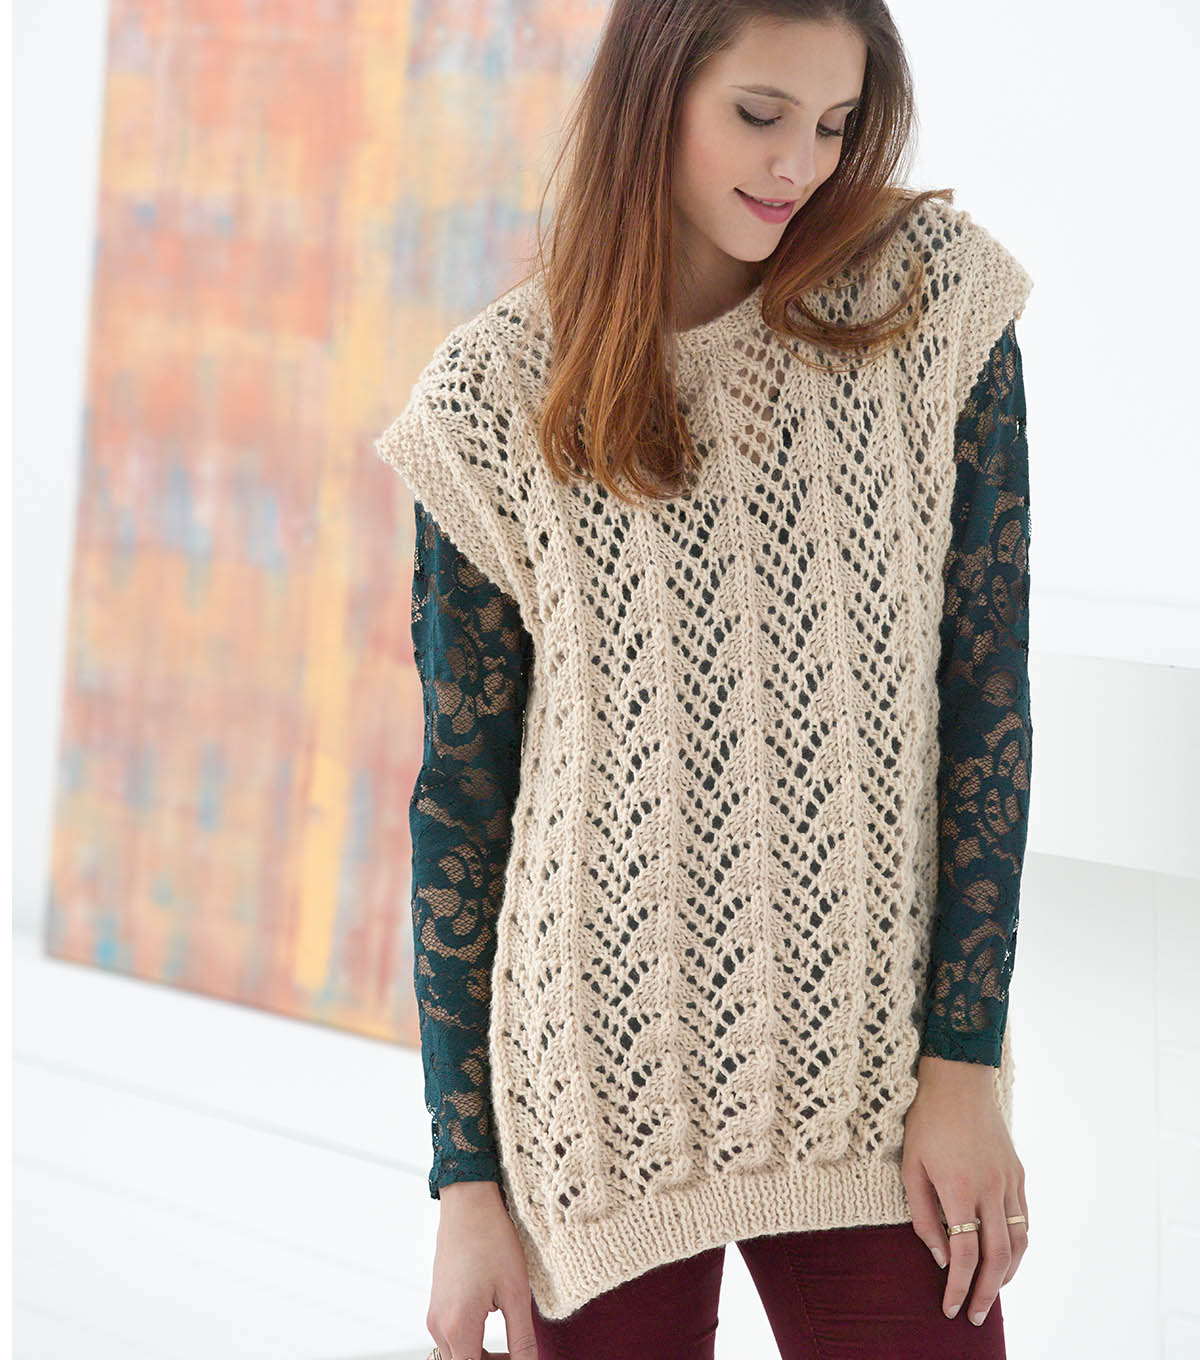 Knitted Lace Patterns Dictionary